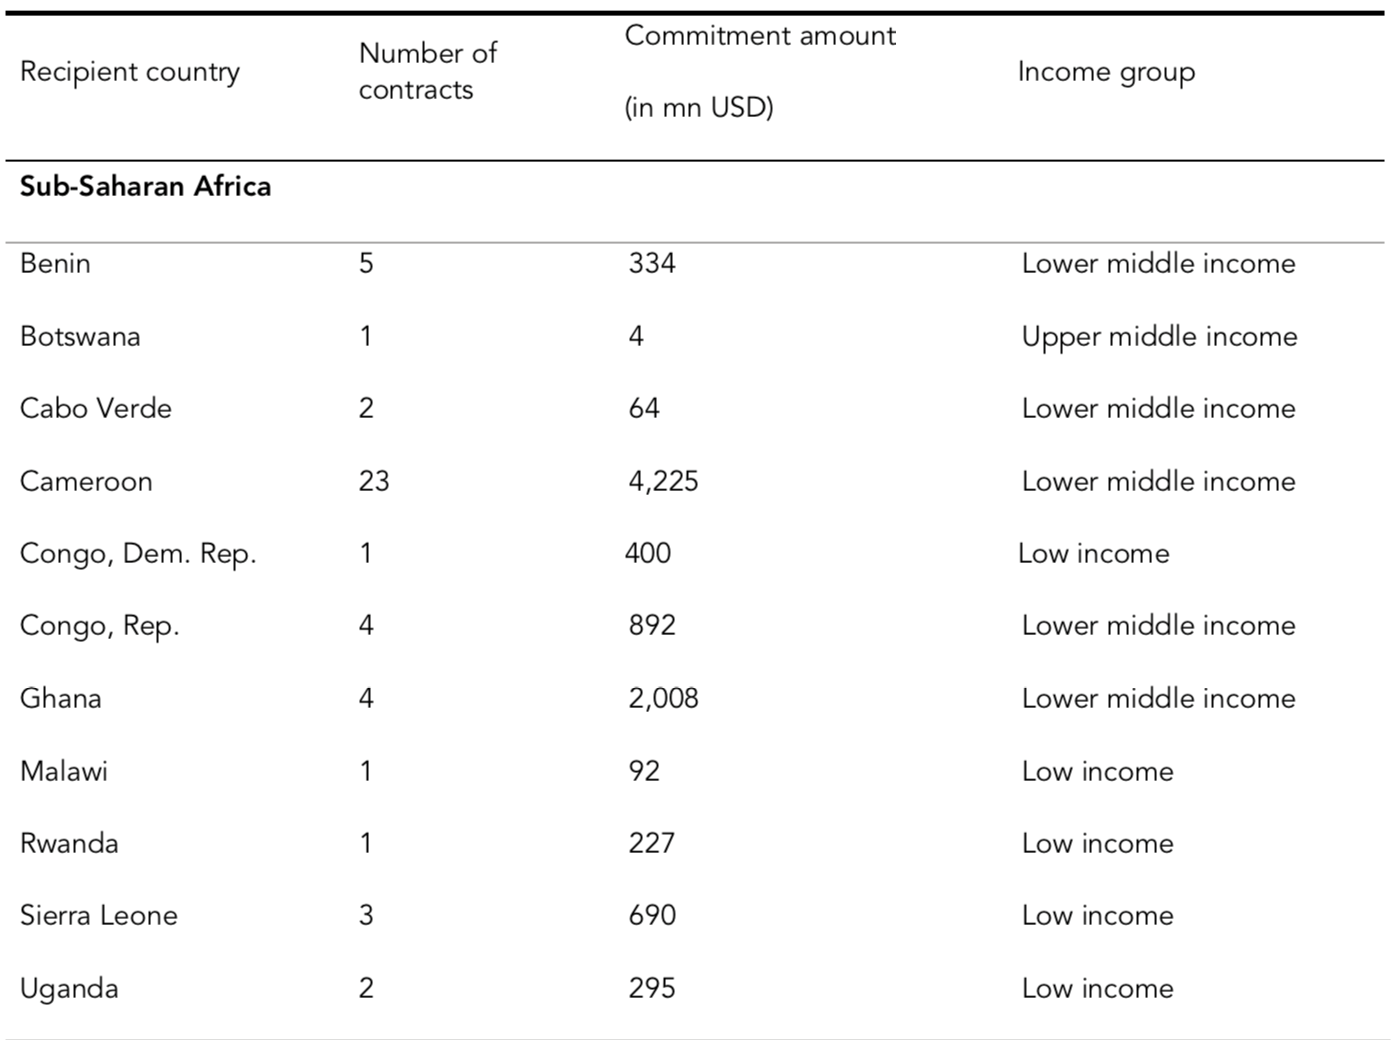 Figure 1. Breakdown of China-Africa Debt Contracts represented in the study